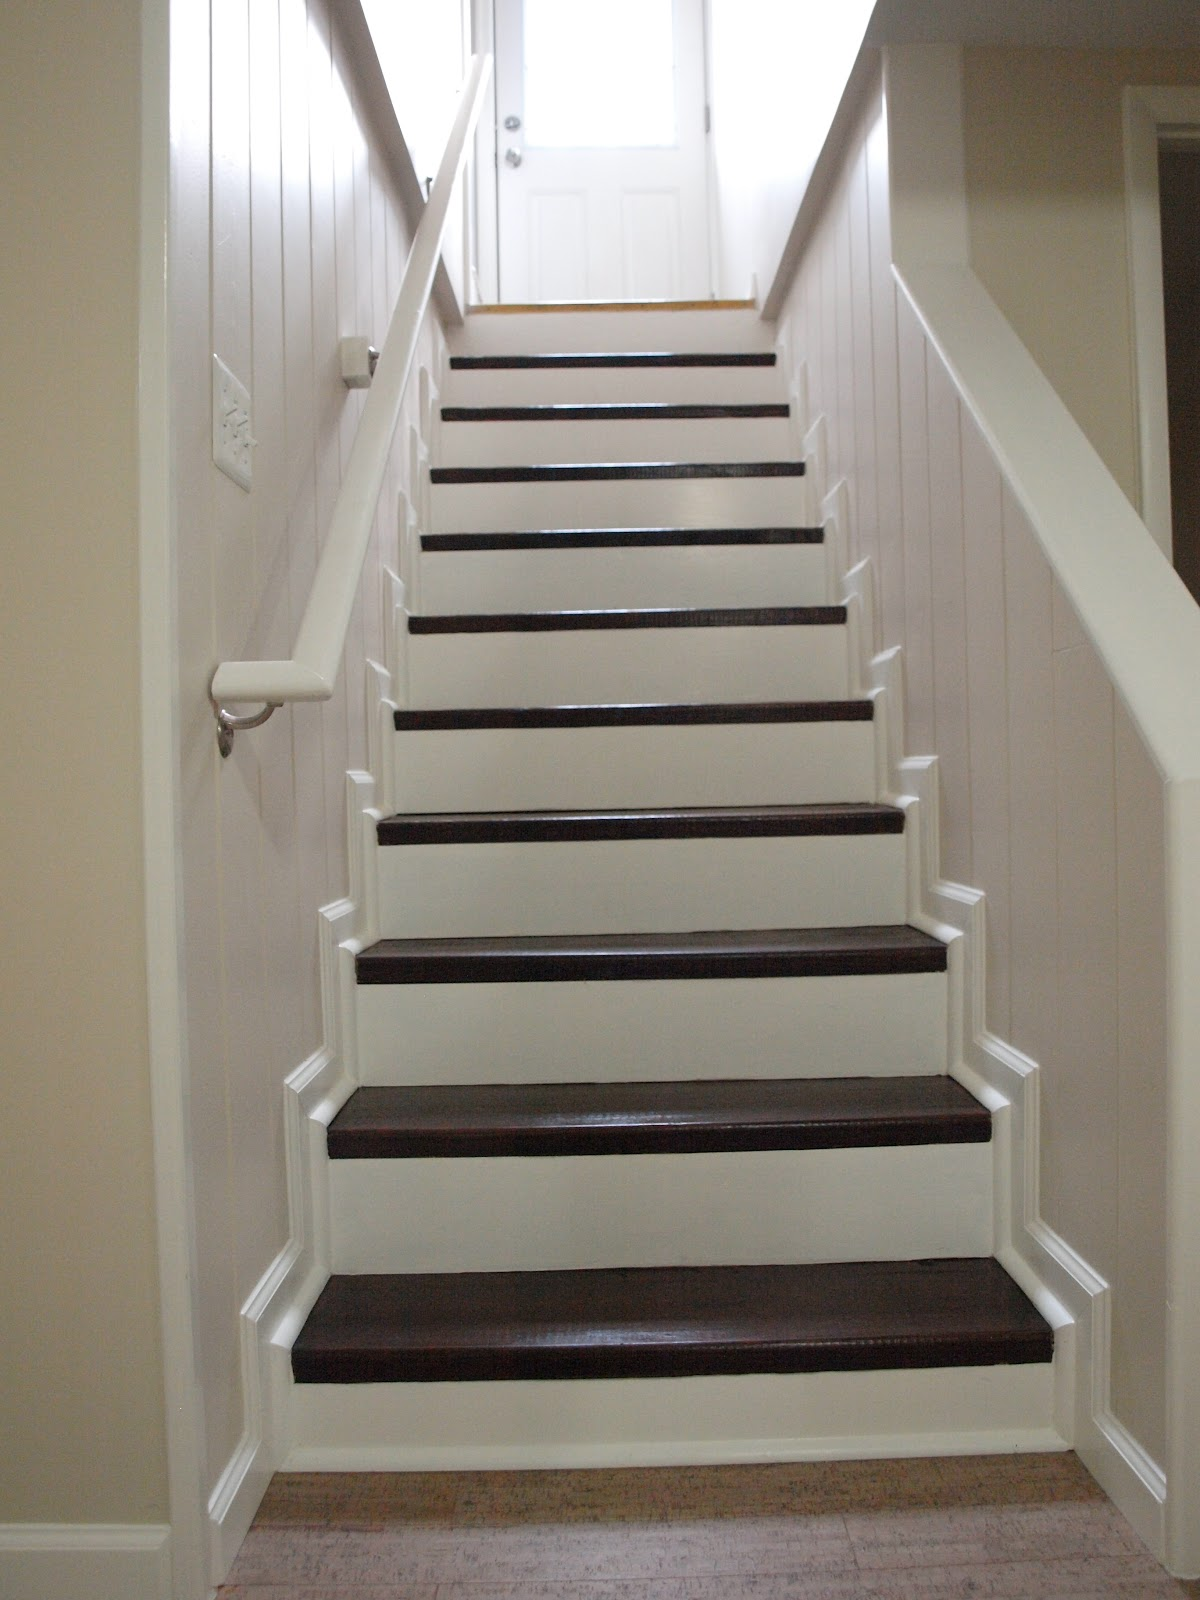 More Green For Less Green: Tackling the Ugliest Stairs in